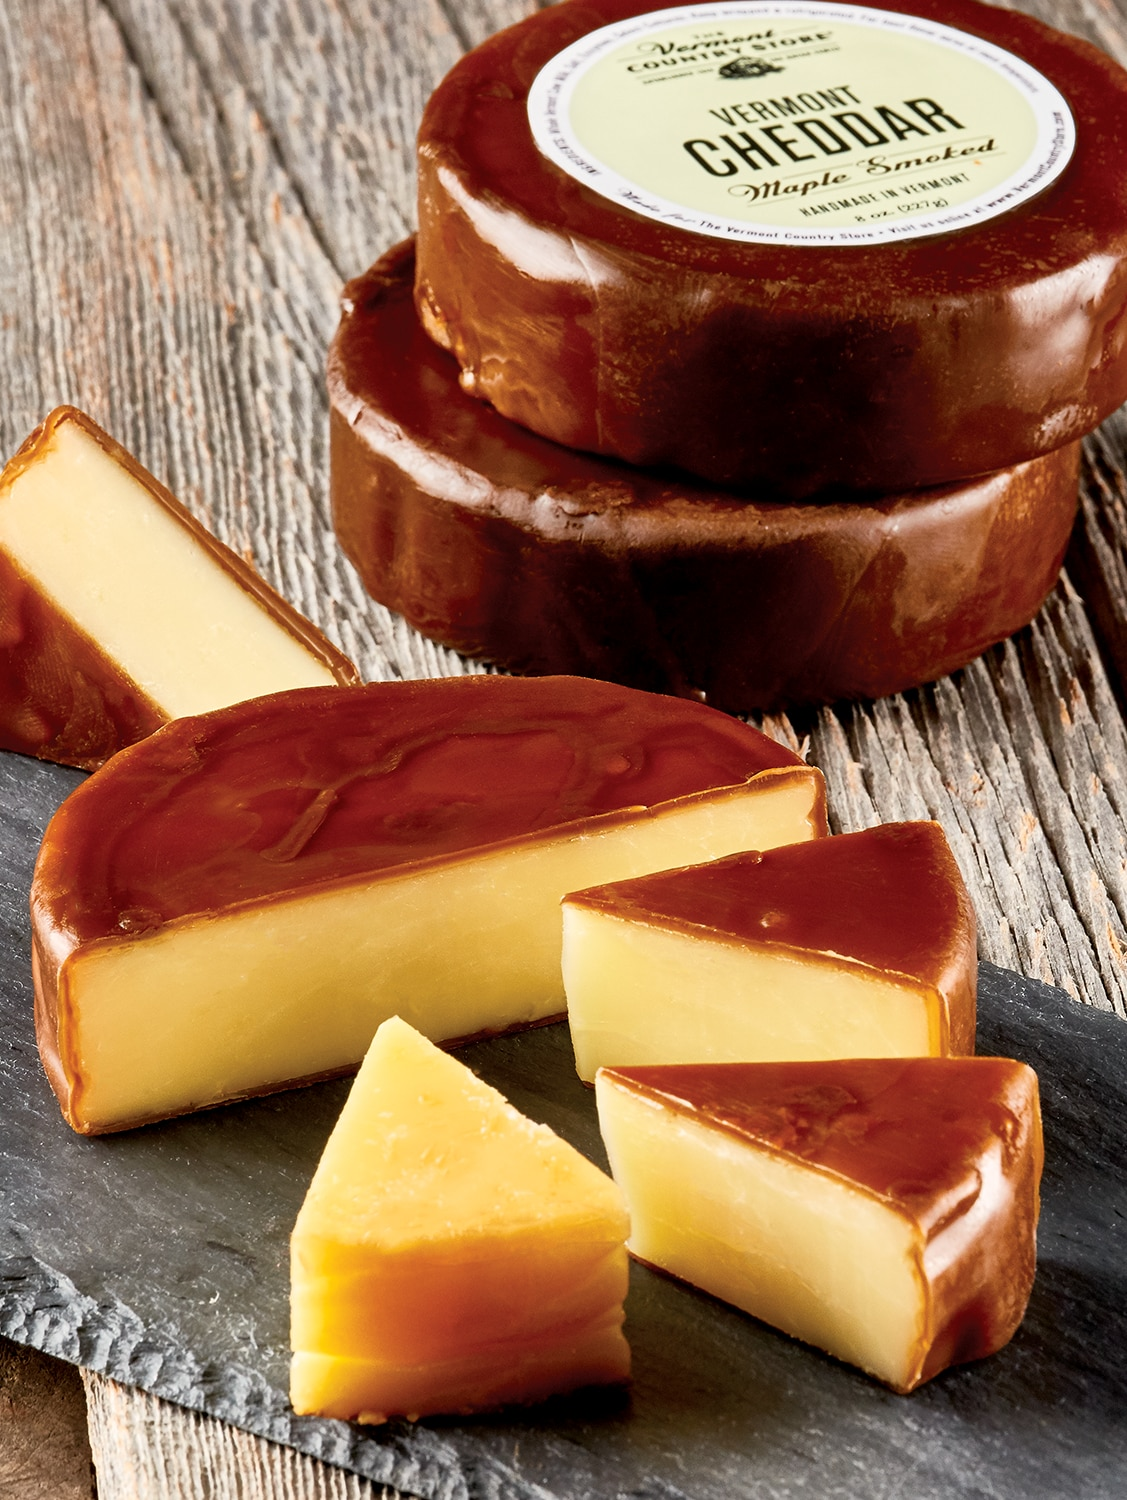 Vermont Maple Smoked Cheddar Cheese Wheel